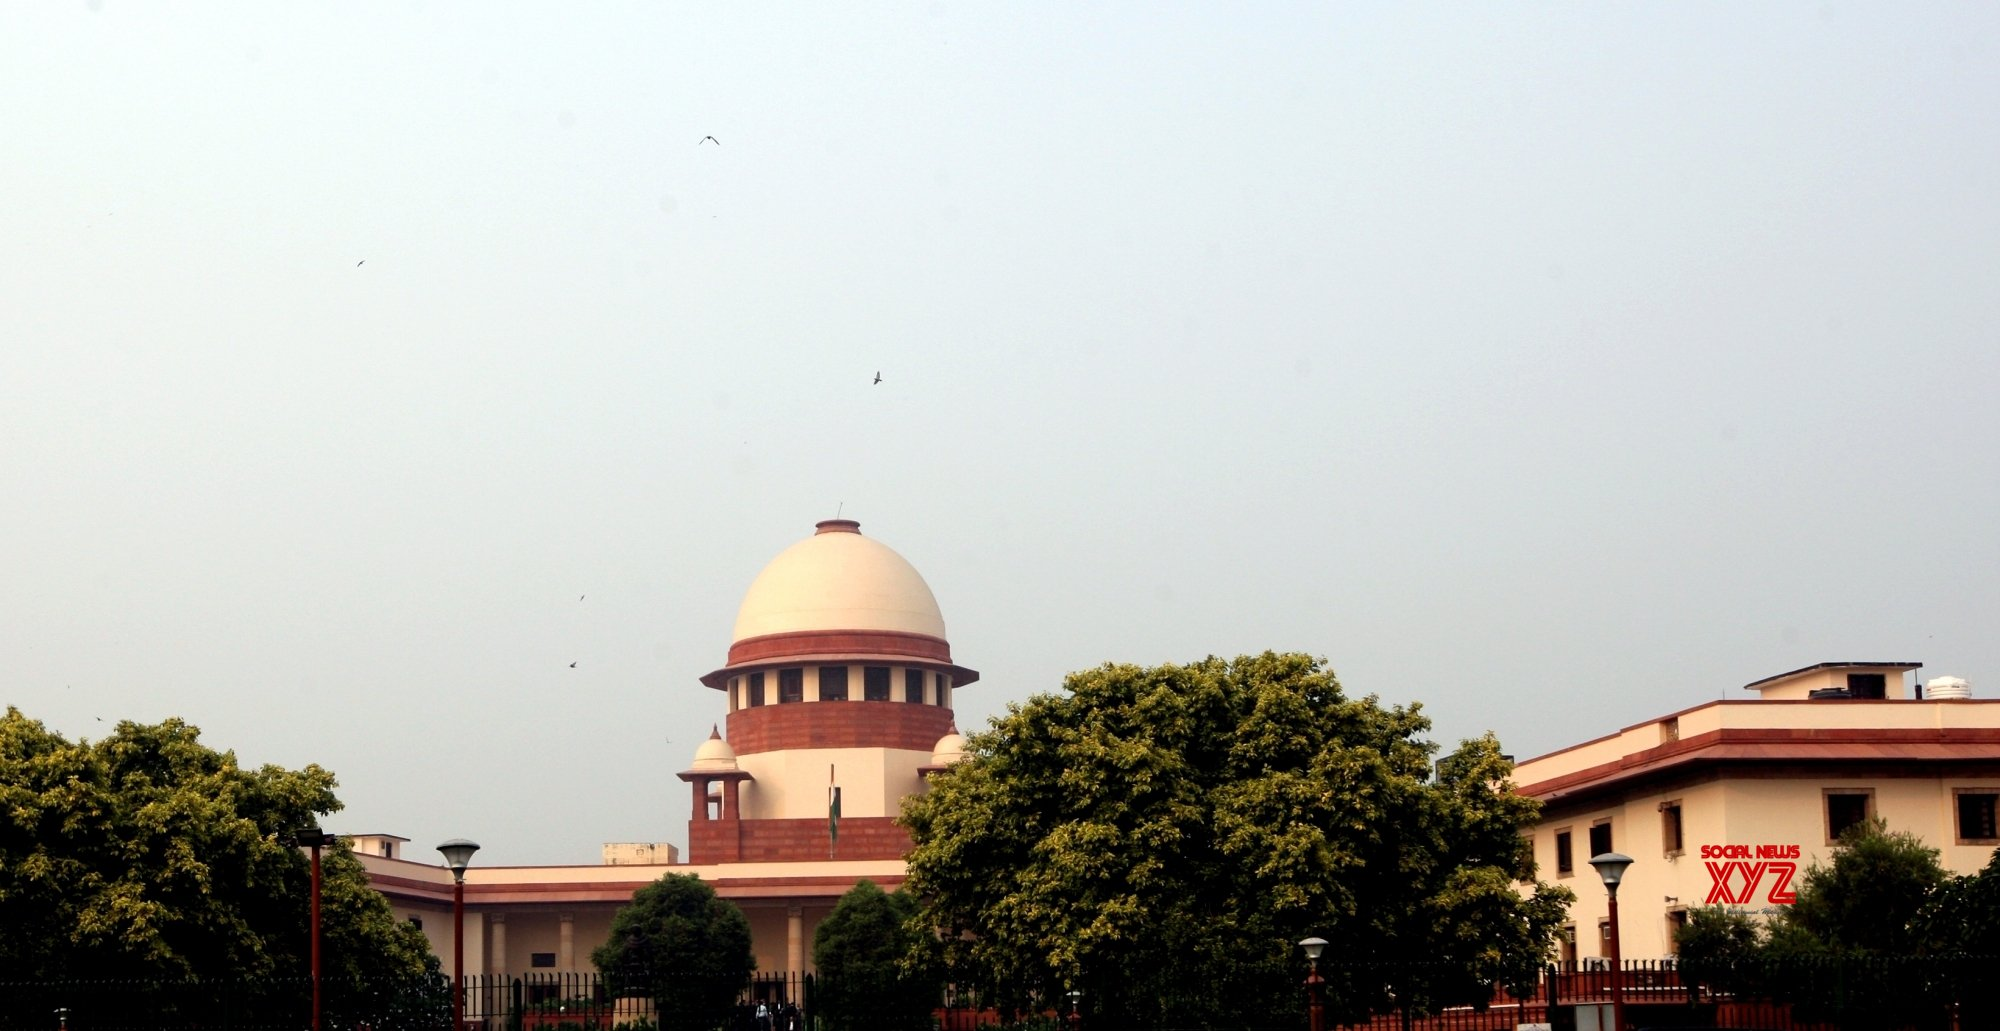 SC to set up Bench to hear 2G spectrum case pleas